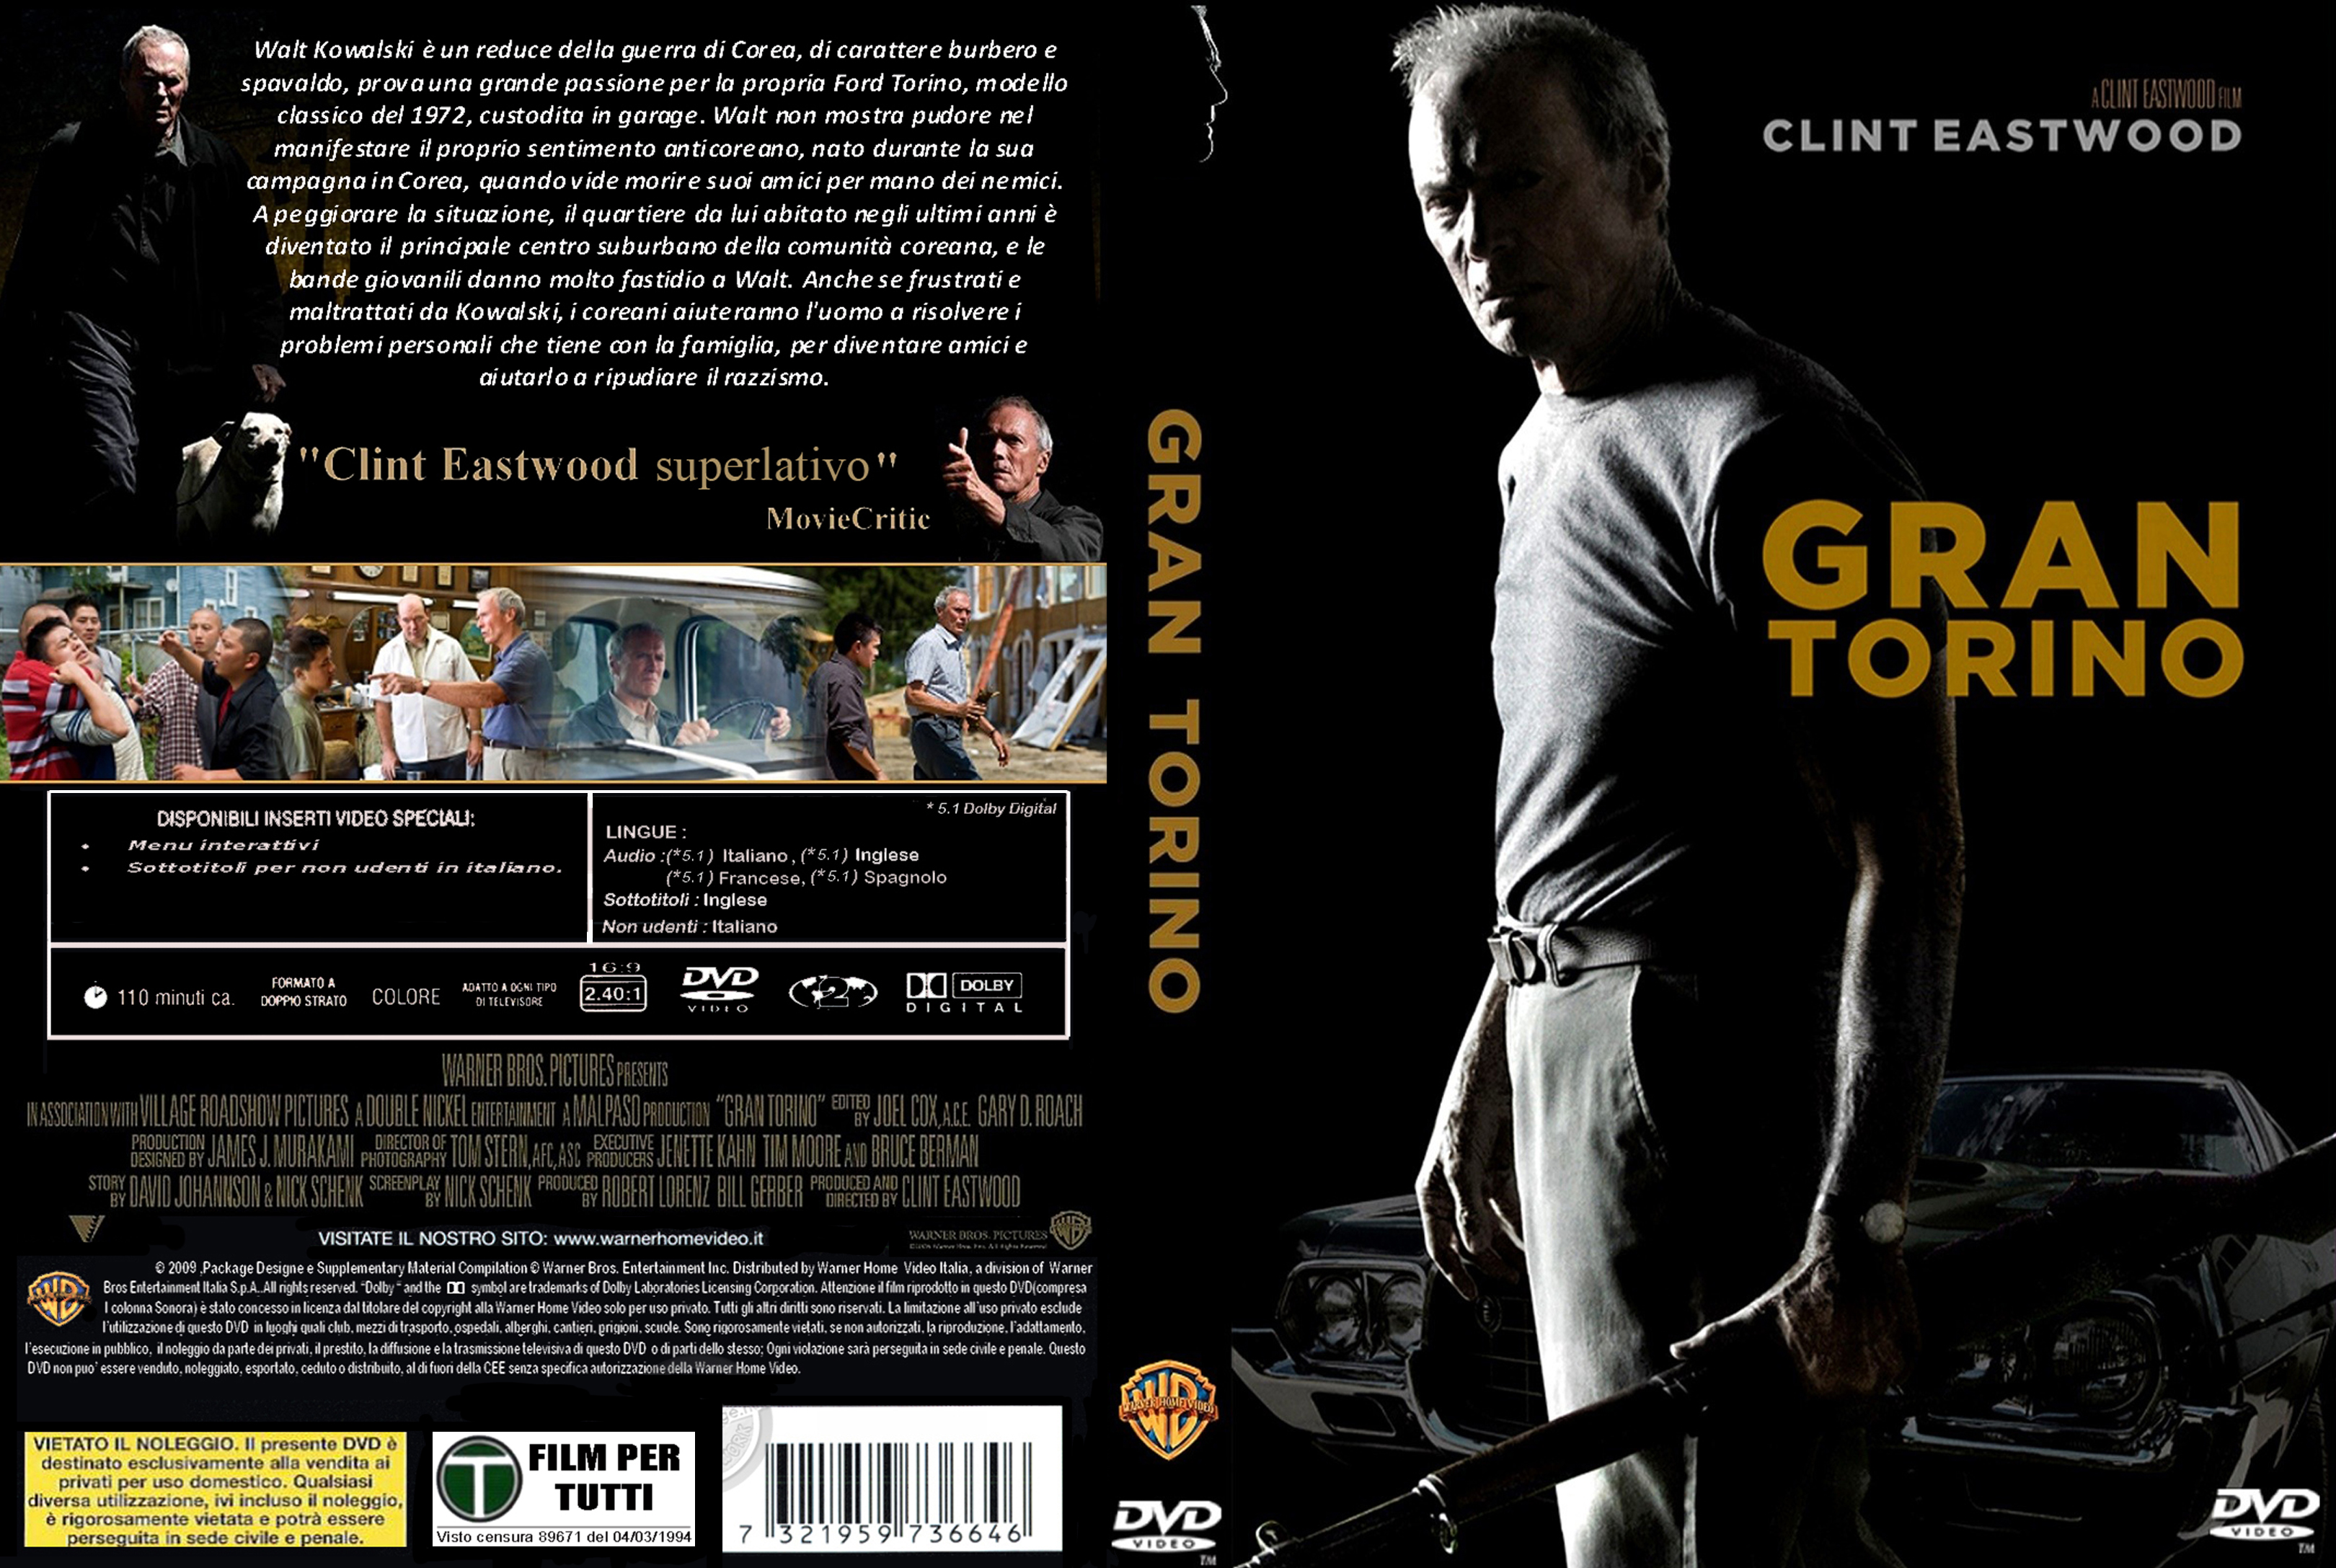 sterotyping in the movie gran torino essay research paper service sterotyping in the movie gran torino essay ""